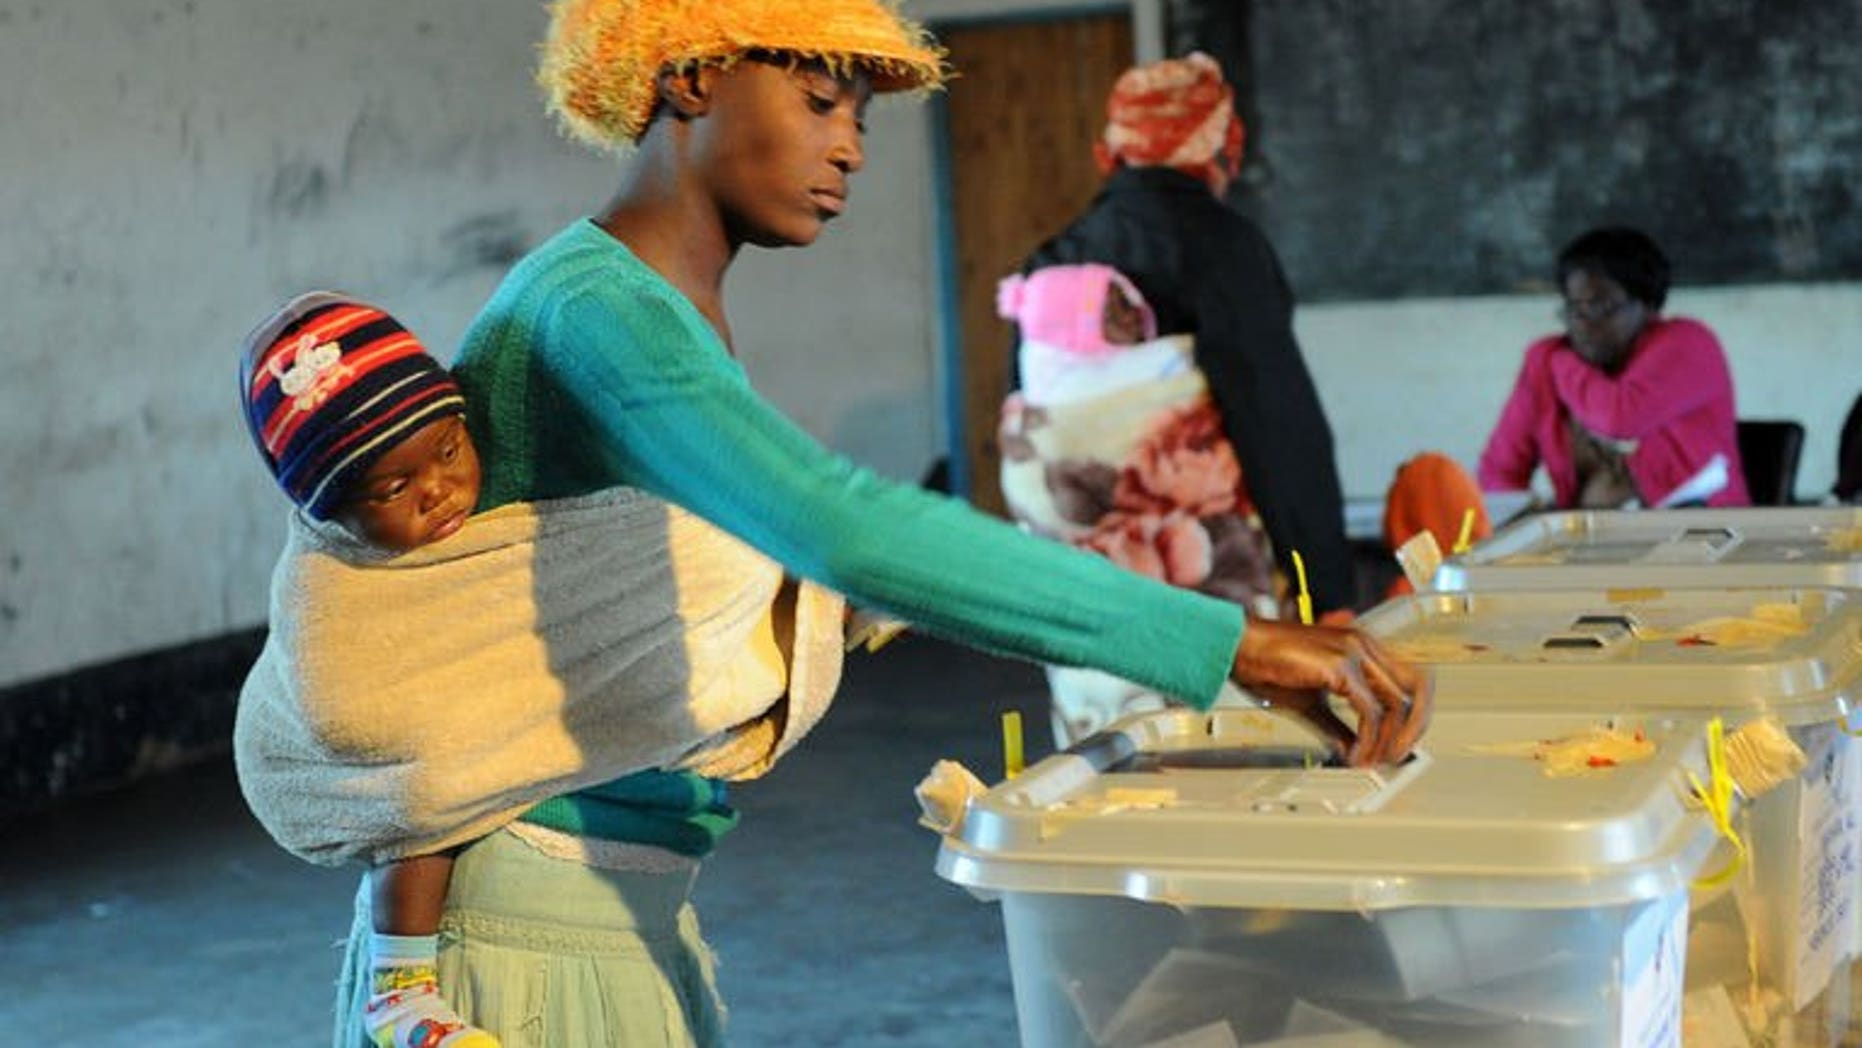 A Zimbabwean mother holding her child casts her ballot at a polling station on July 31, 2013 in Domboshava, 60km north of Harare. The first official results from Zimbabwe's disputed national assembly elections showed President Robert Mugabe's party gaining an early and overwhelming lead Thursday.